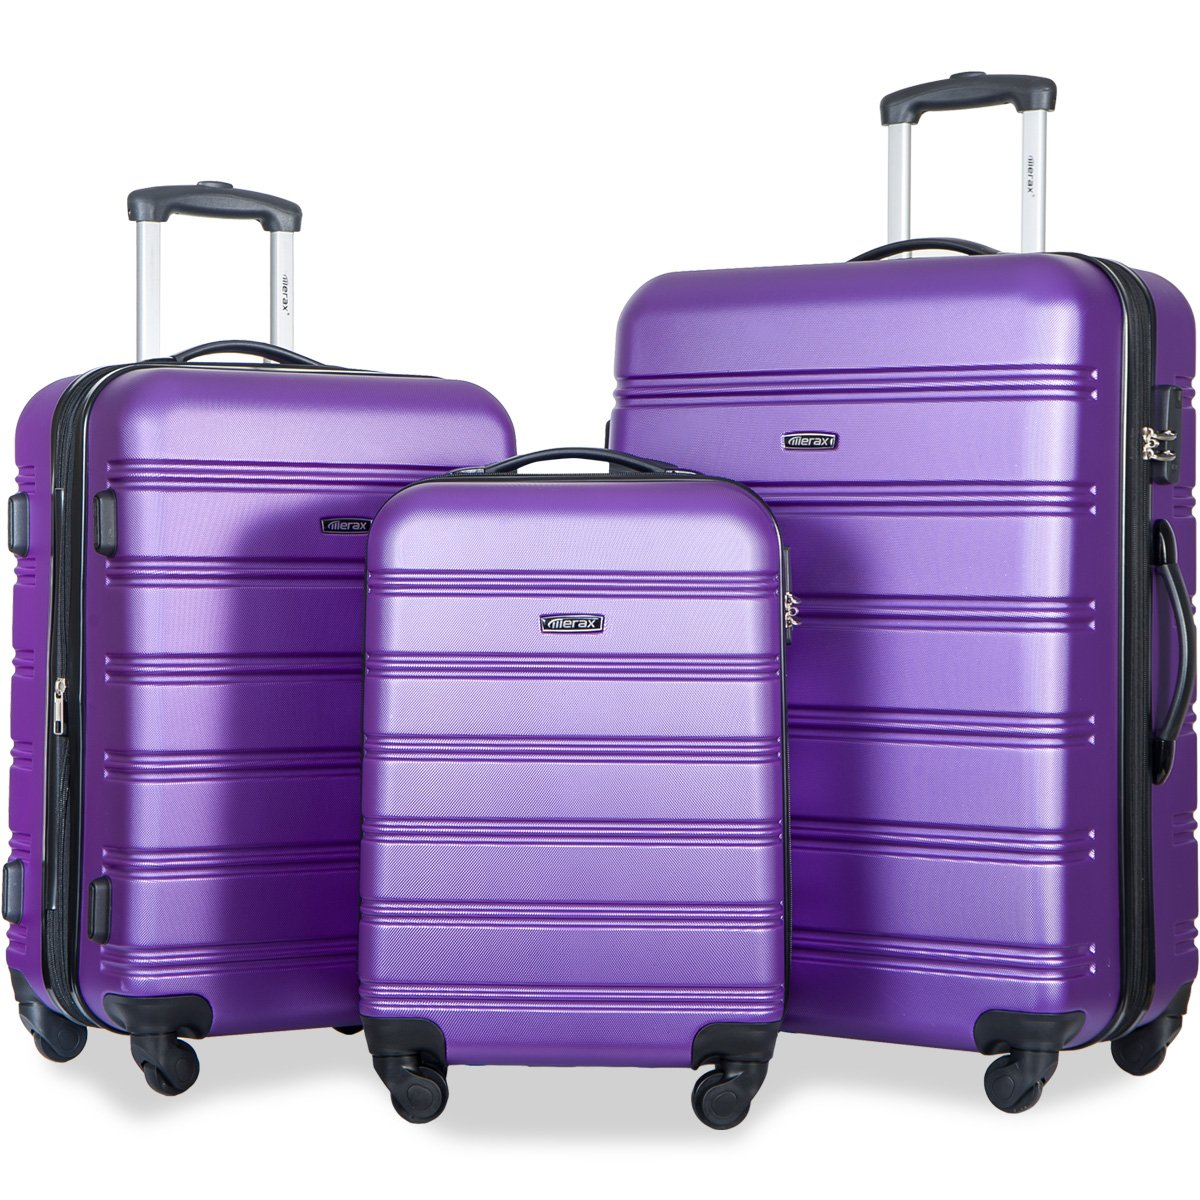 11a215a420e The ultimate guide to the best luggage sets in 2019